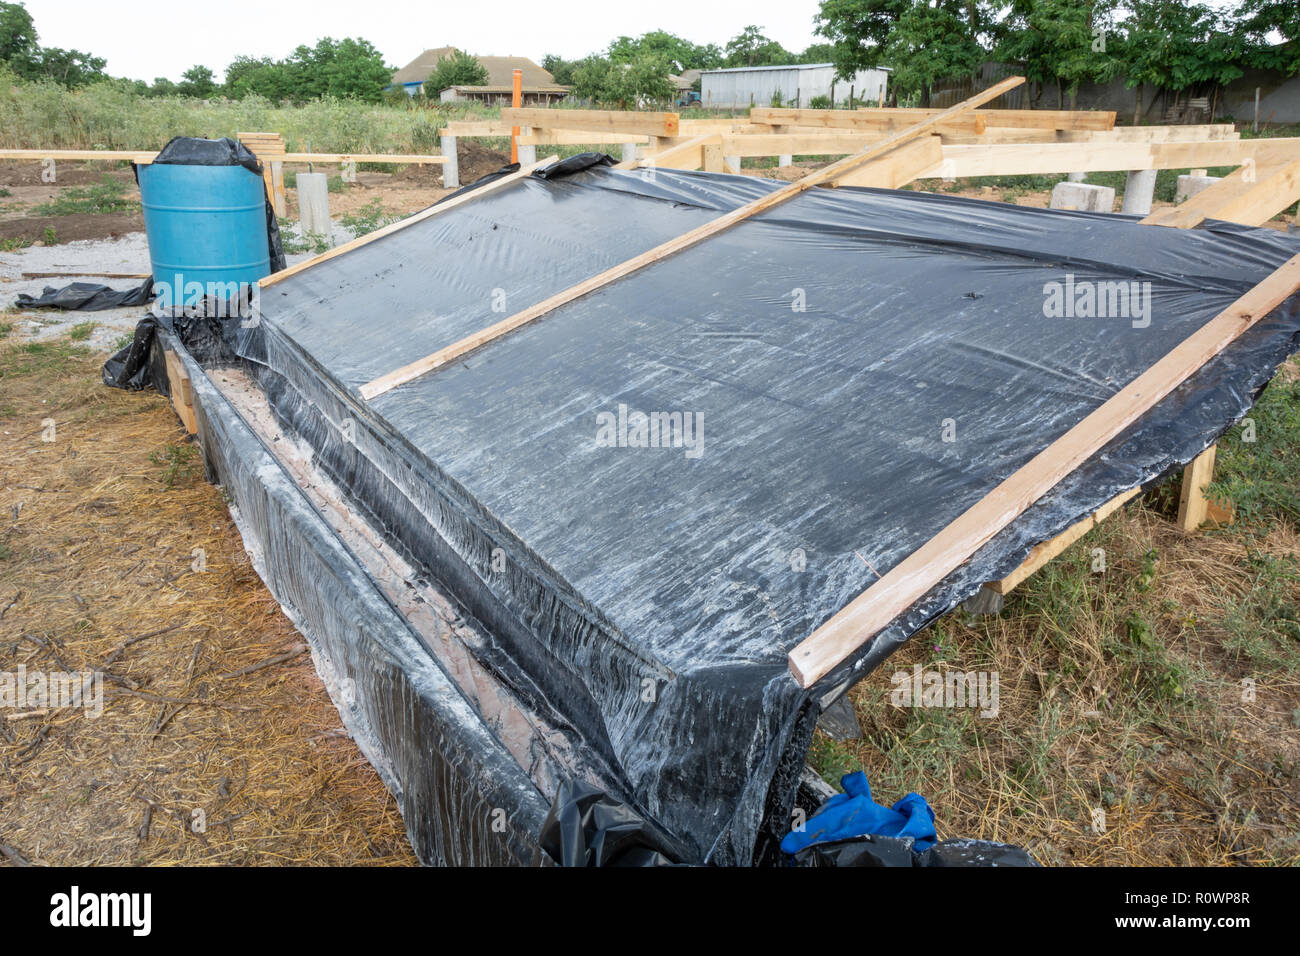 A box-platform for the impregnation of pine boards with an antiseptic protective agent against insects and fire. Construction of the frame house. Stock Photo